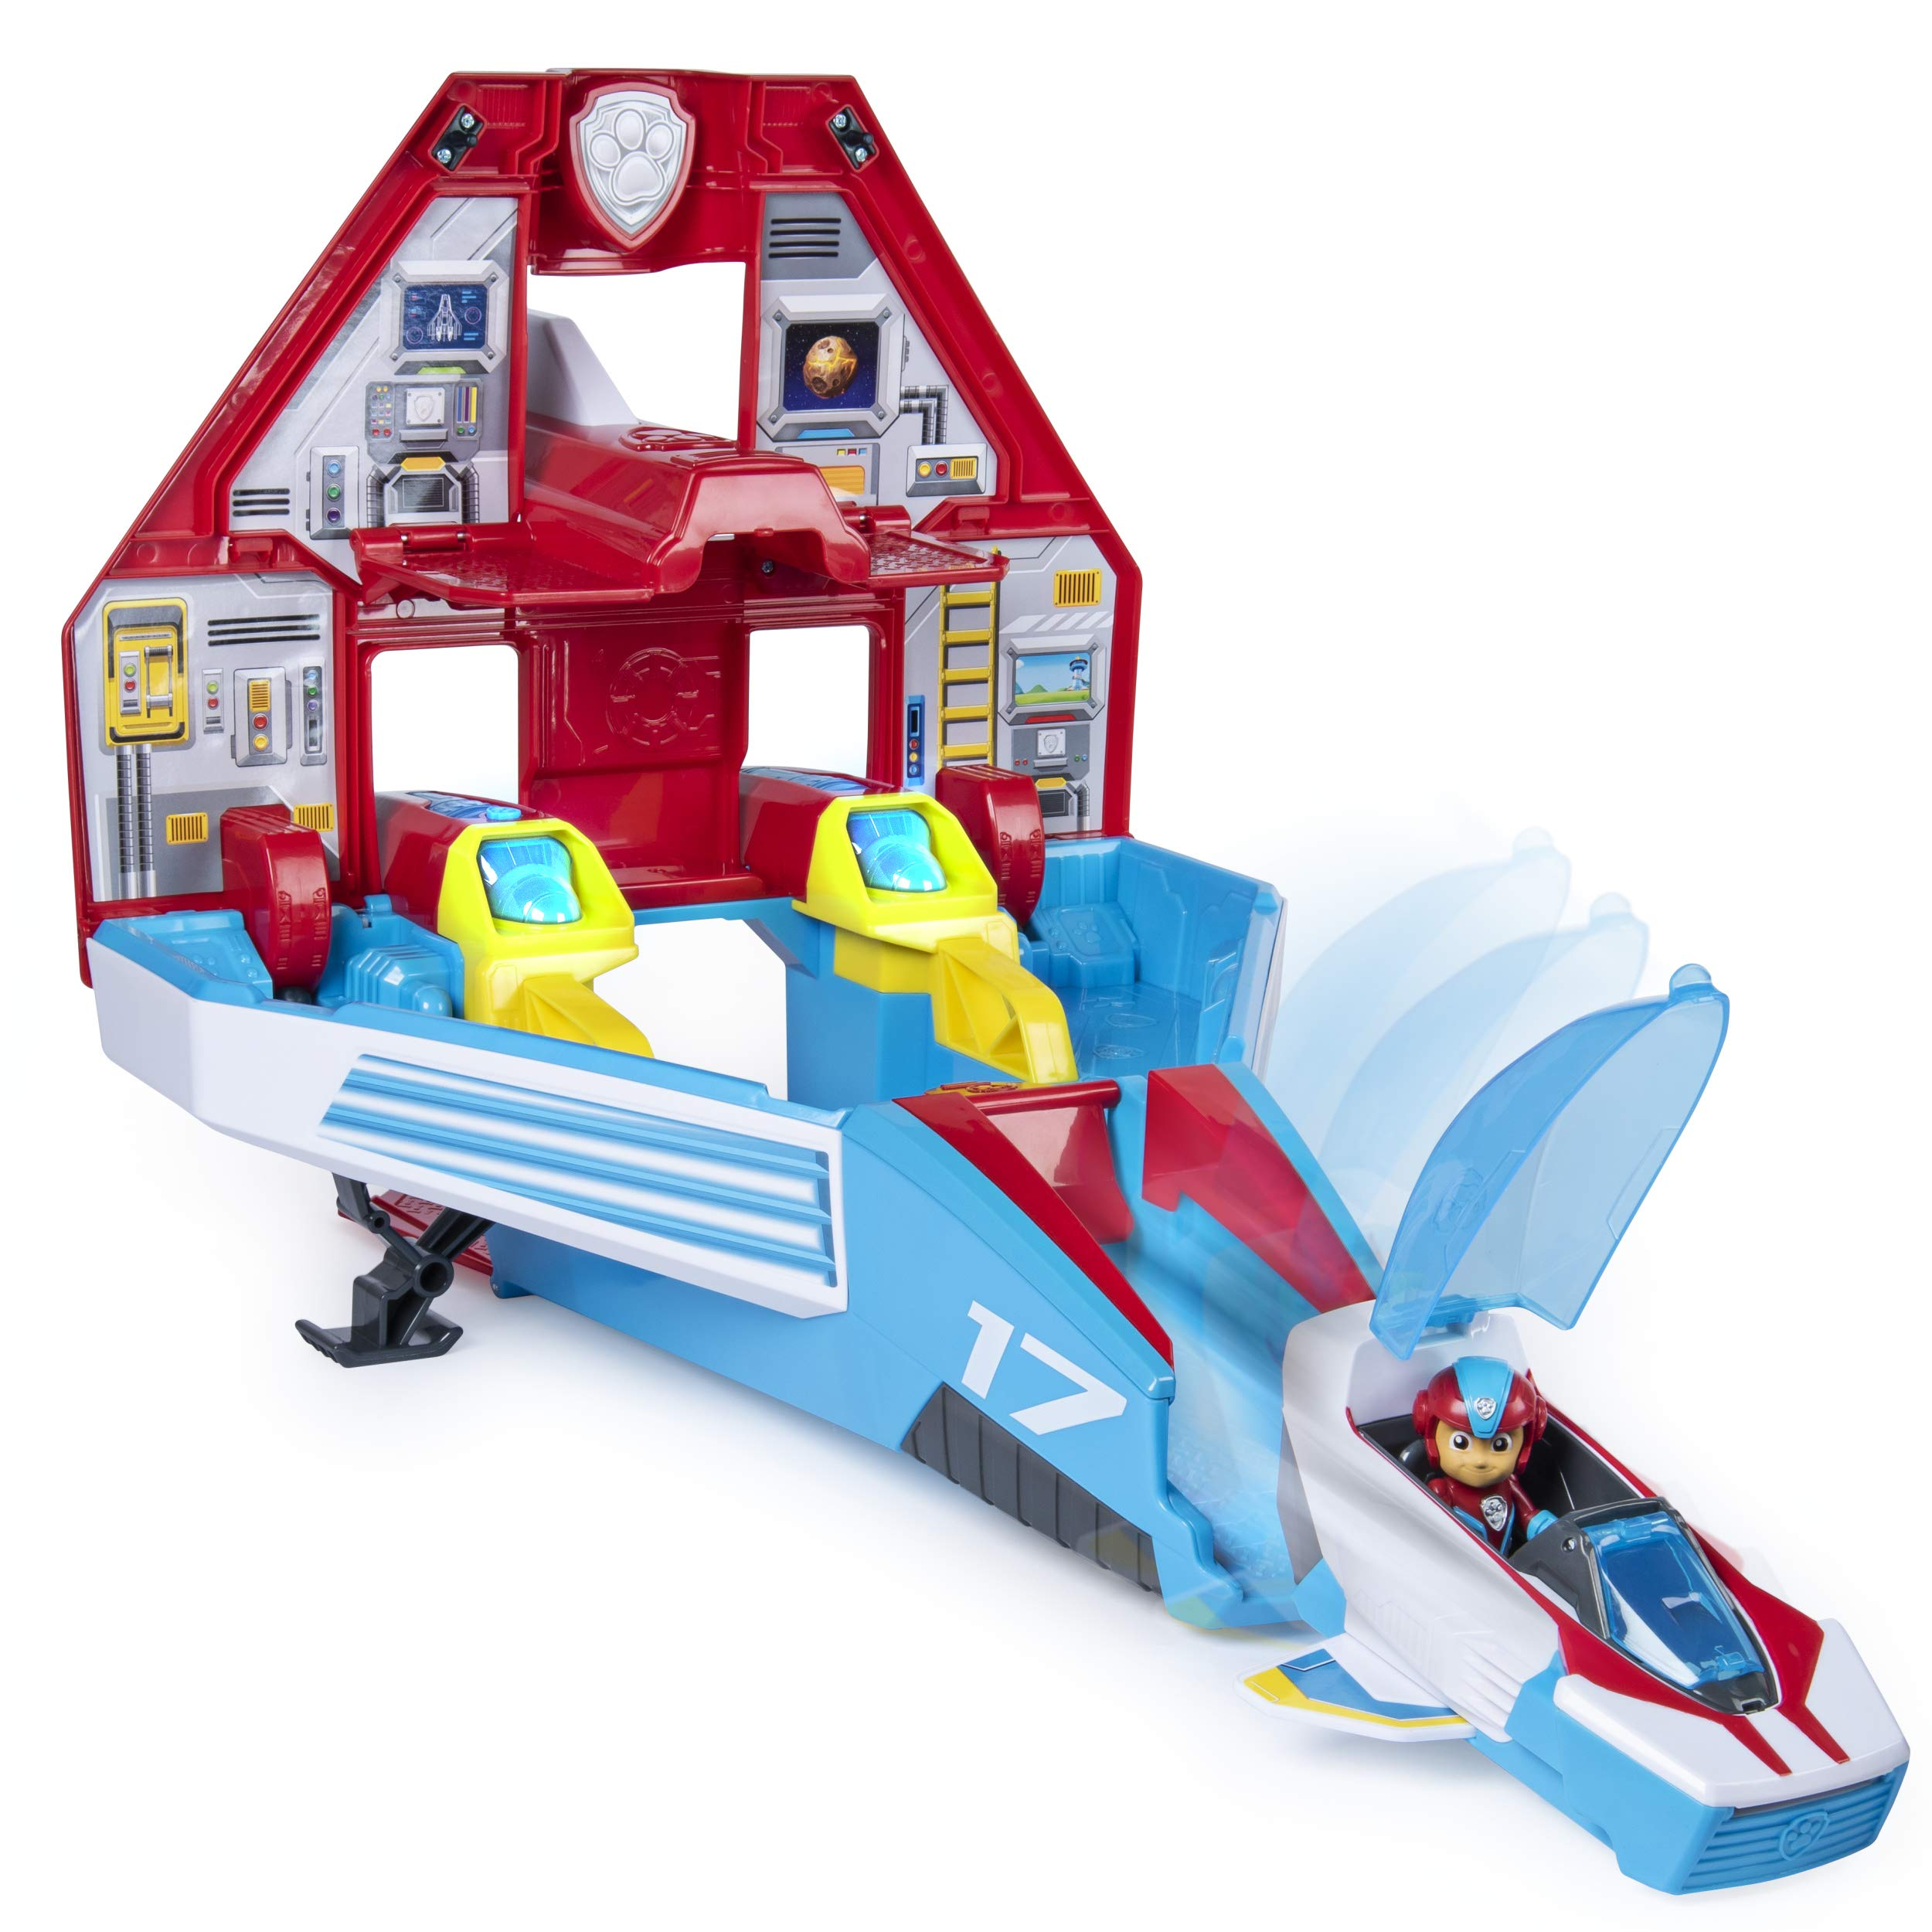 Paw Patrol, Super Paws, 2-in-1 Transforming Mighty Pups Jet Command Center with Lights and Sounds by Paw Patrol